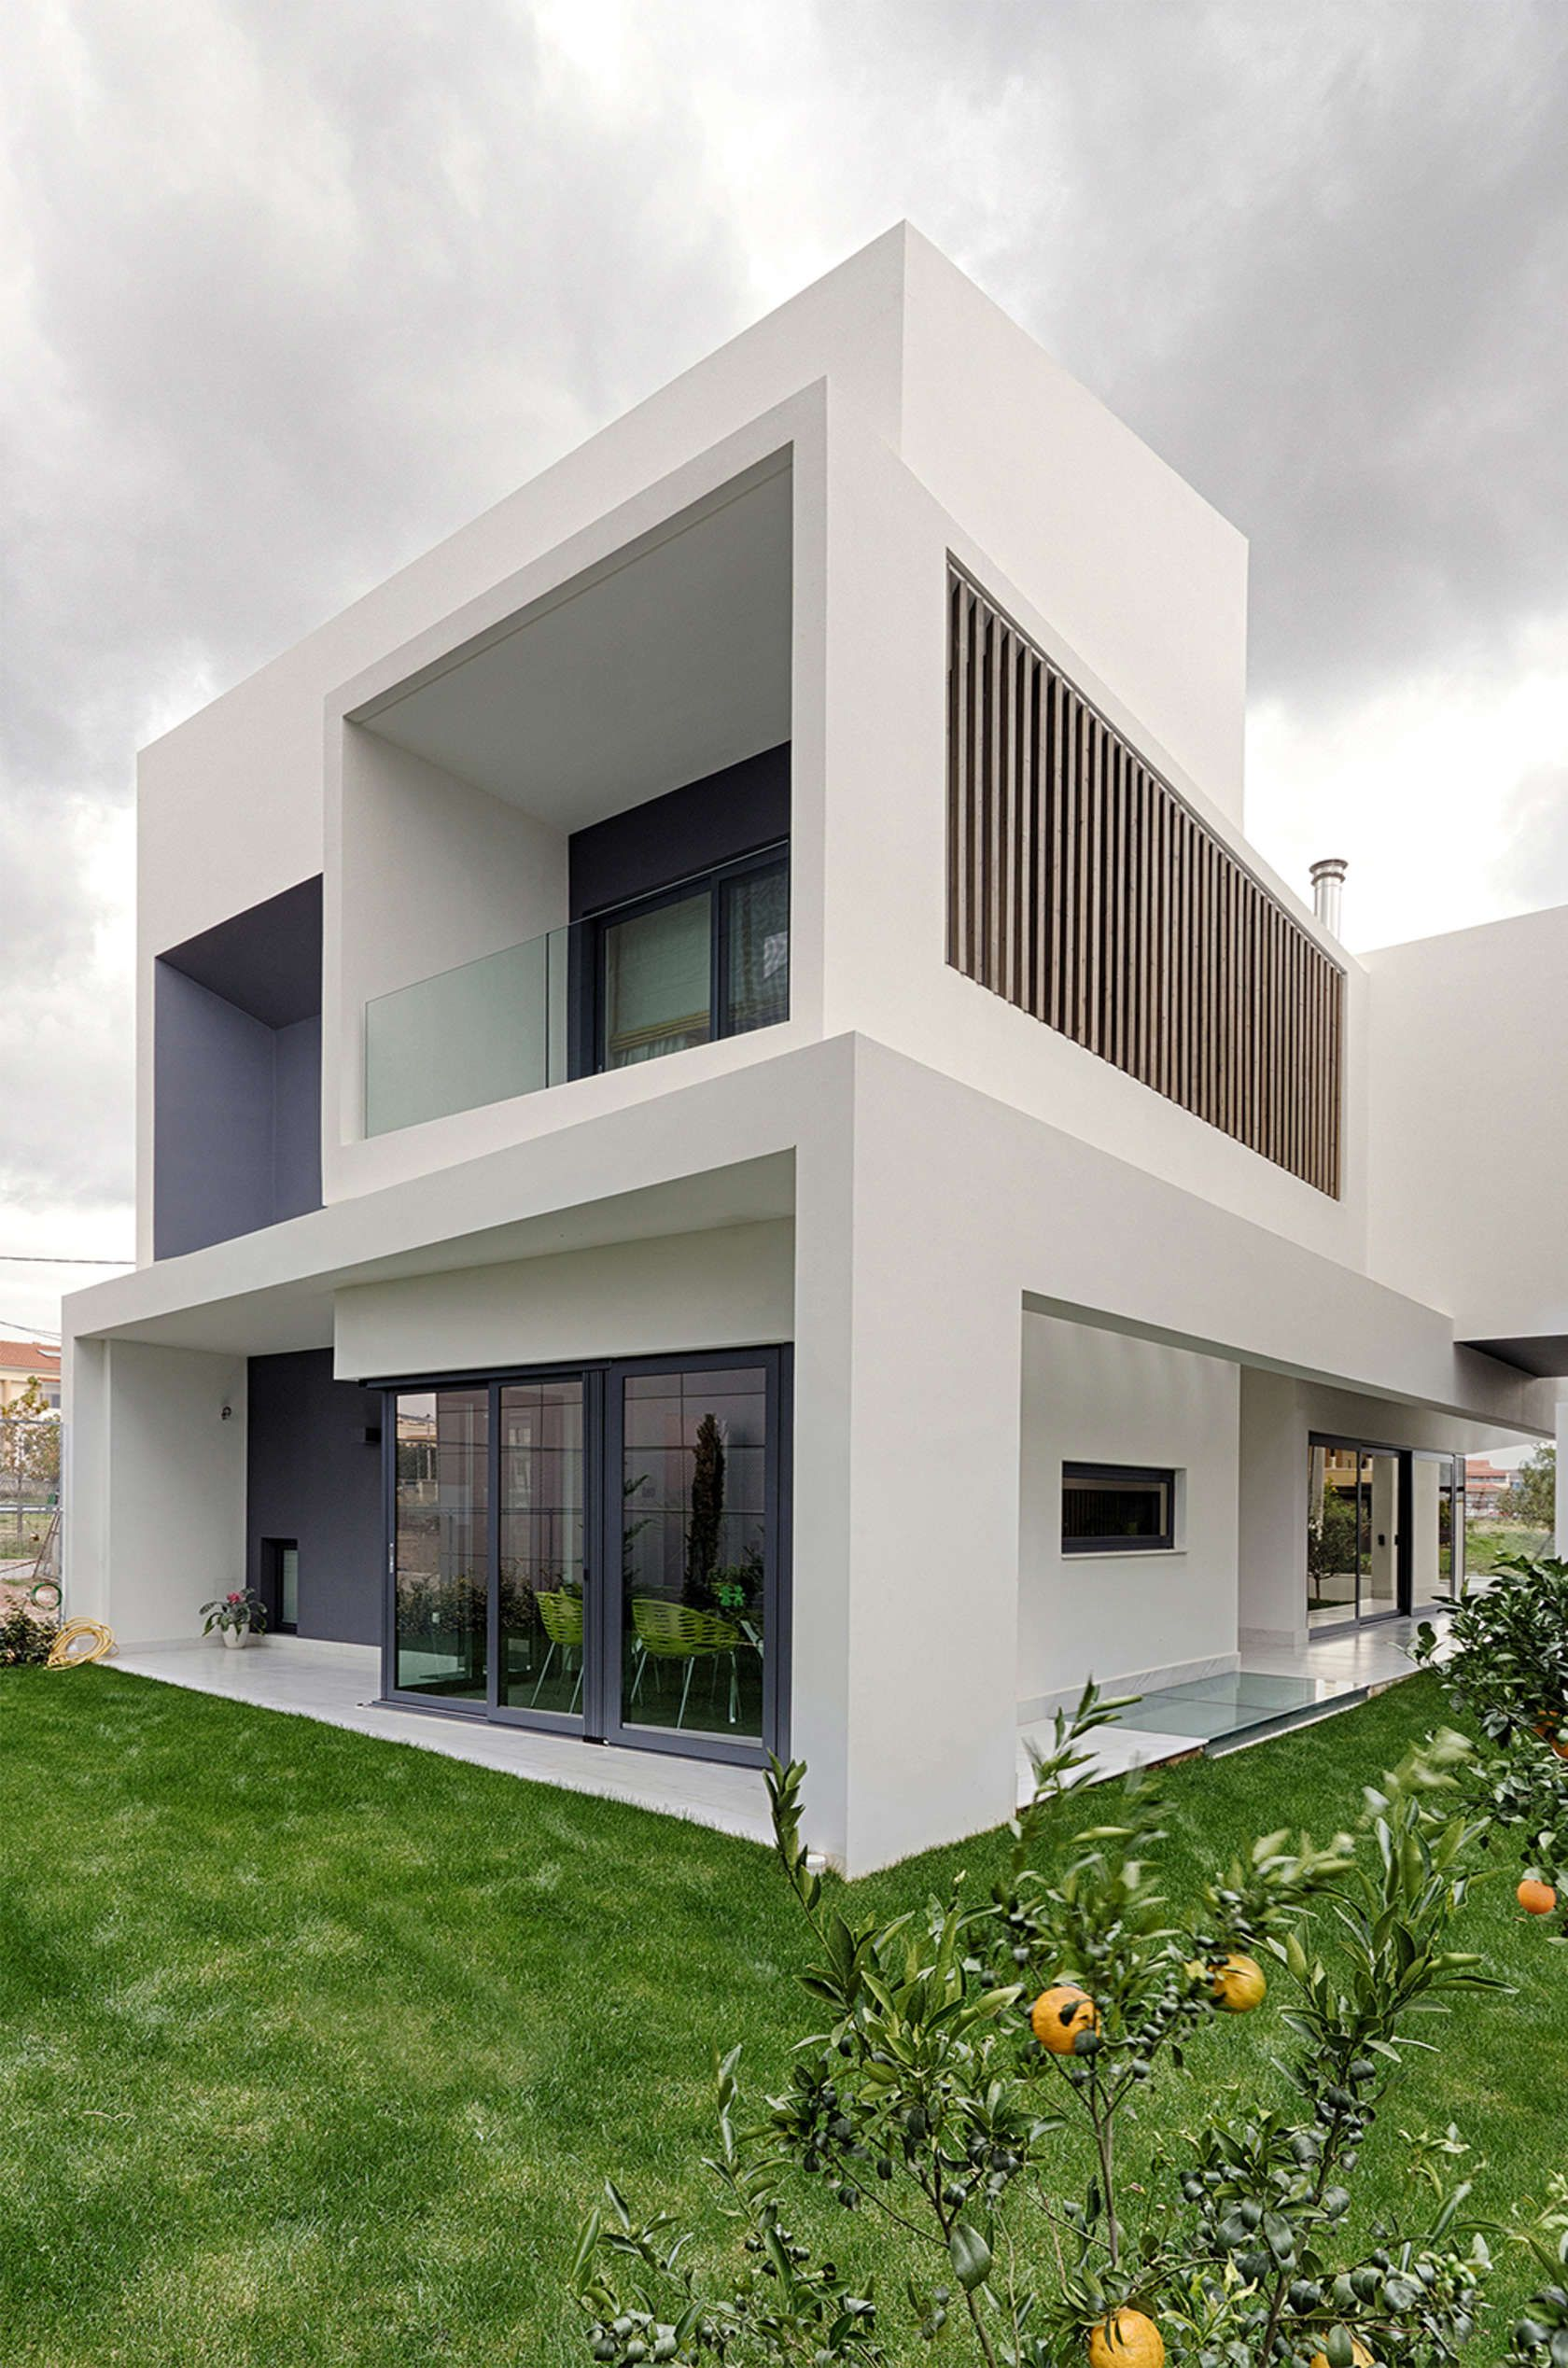 Private residence in gerakas by officetwentyfivearchitects athens greece · family housesmodern